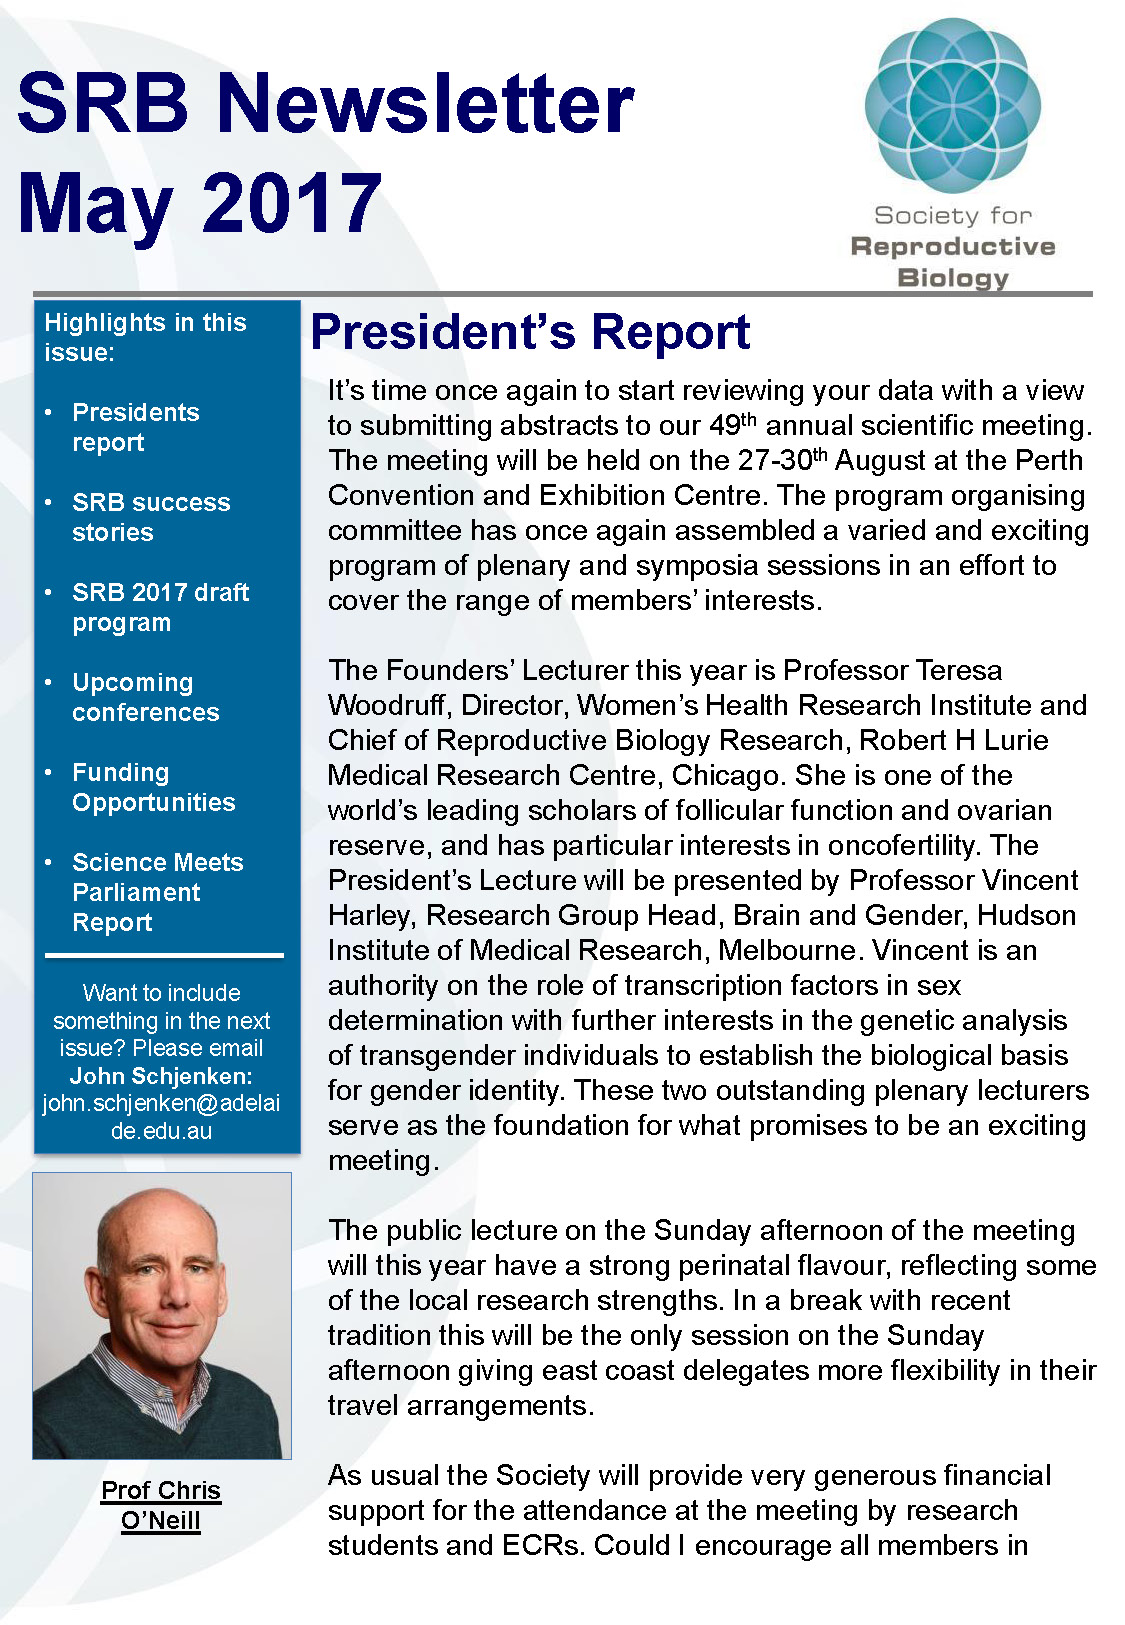 SRB-Newsletter-May-2017_Page_01.jpg